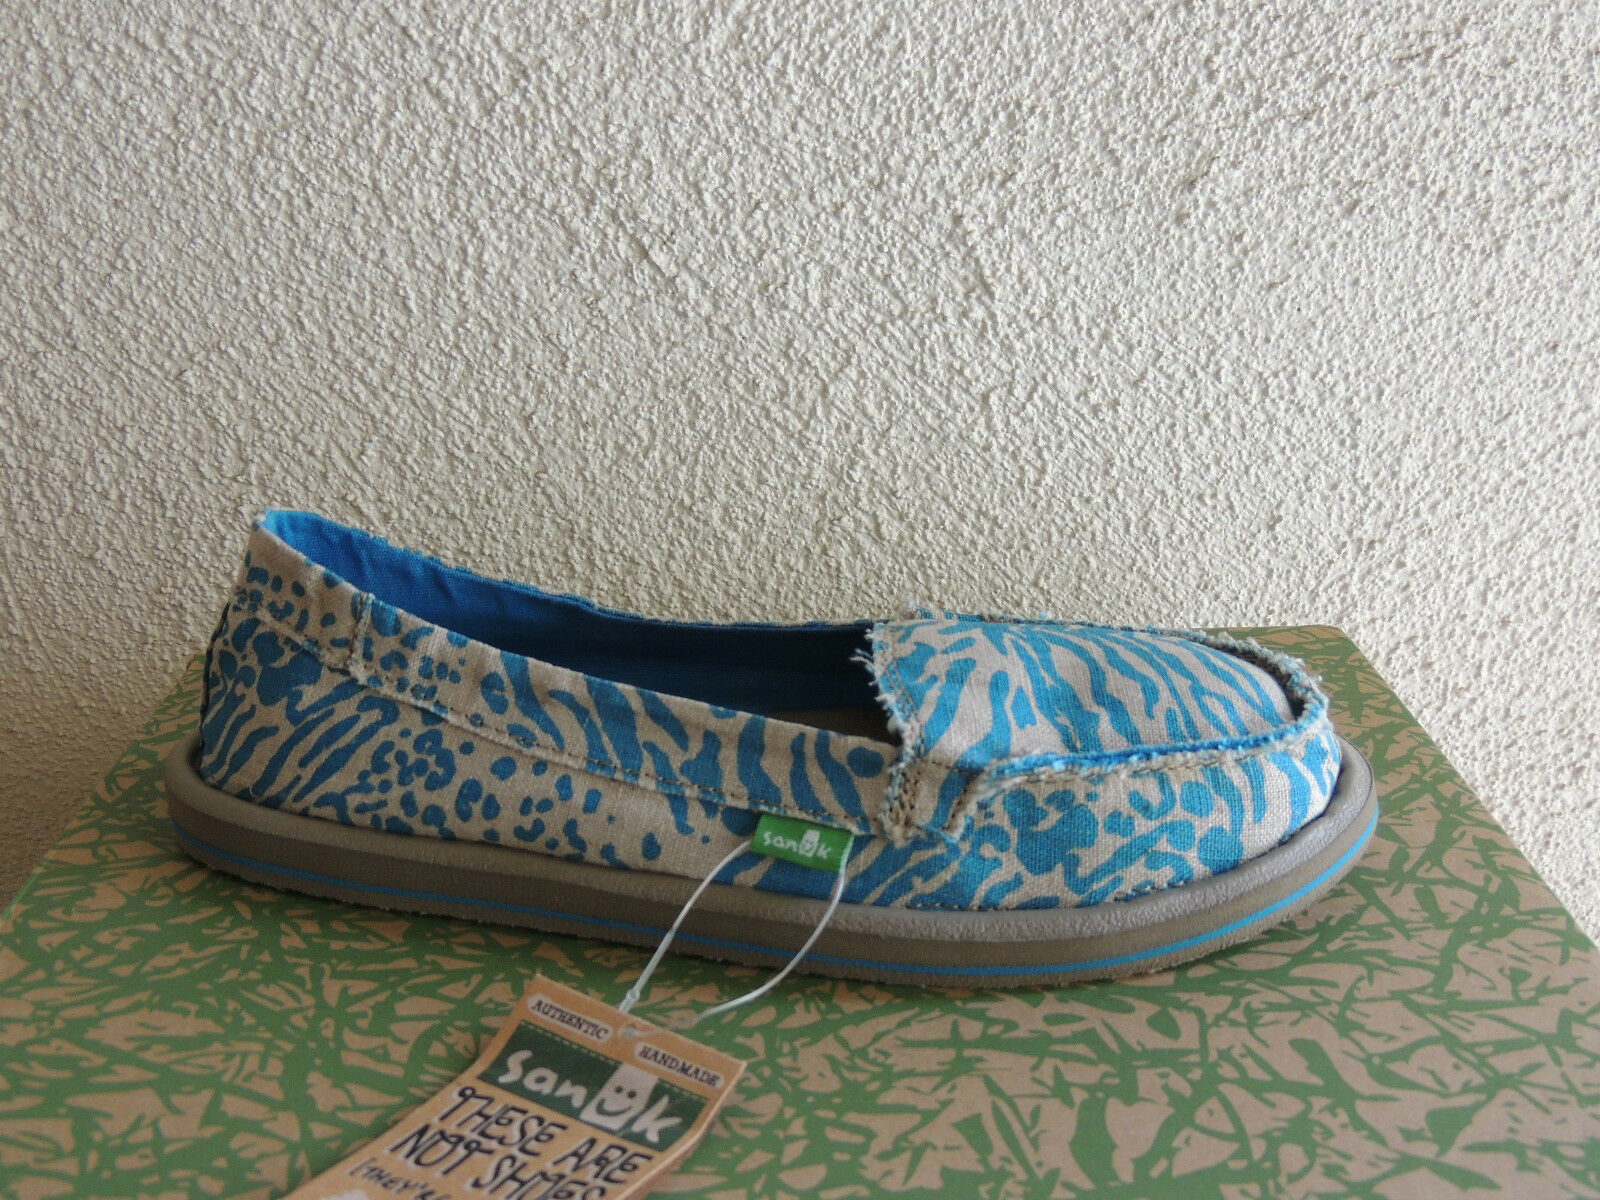 SANUK MARINE blueE SHORTY LEPPATYGA SIDEWALK SURFER SHOES,  US 8  EUR 39  NWT